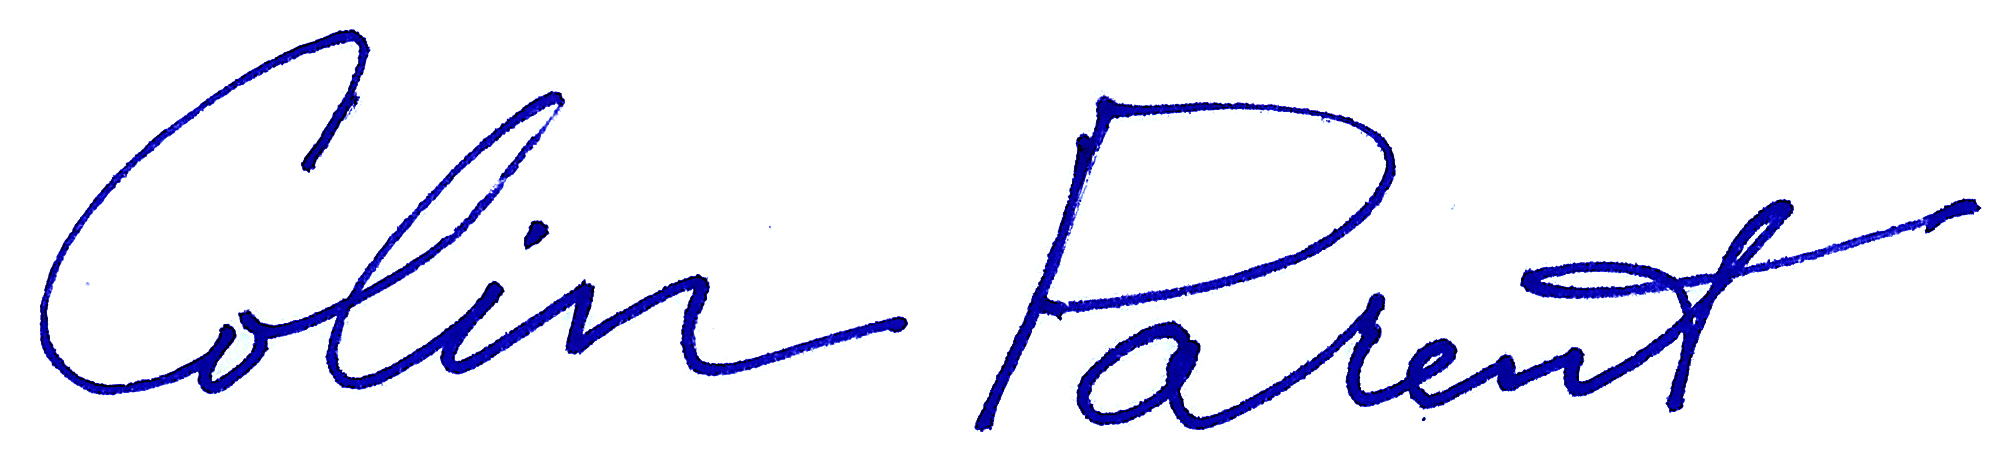 blue_signature_copy.jpg